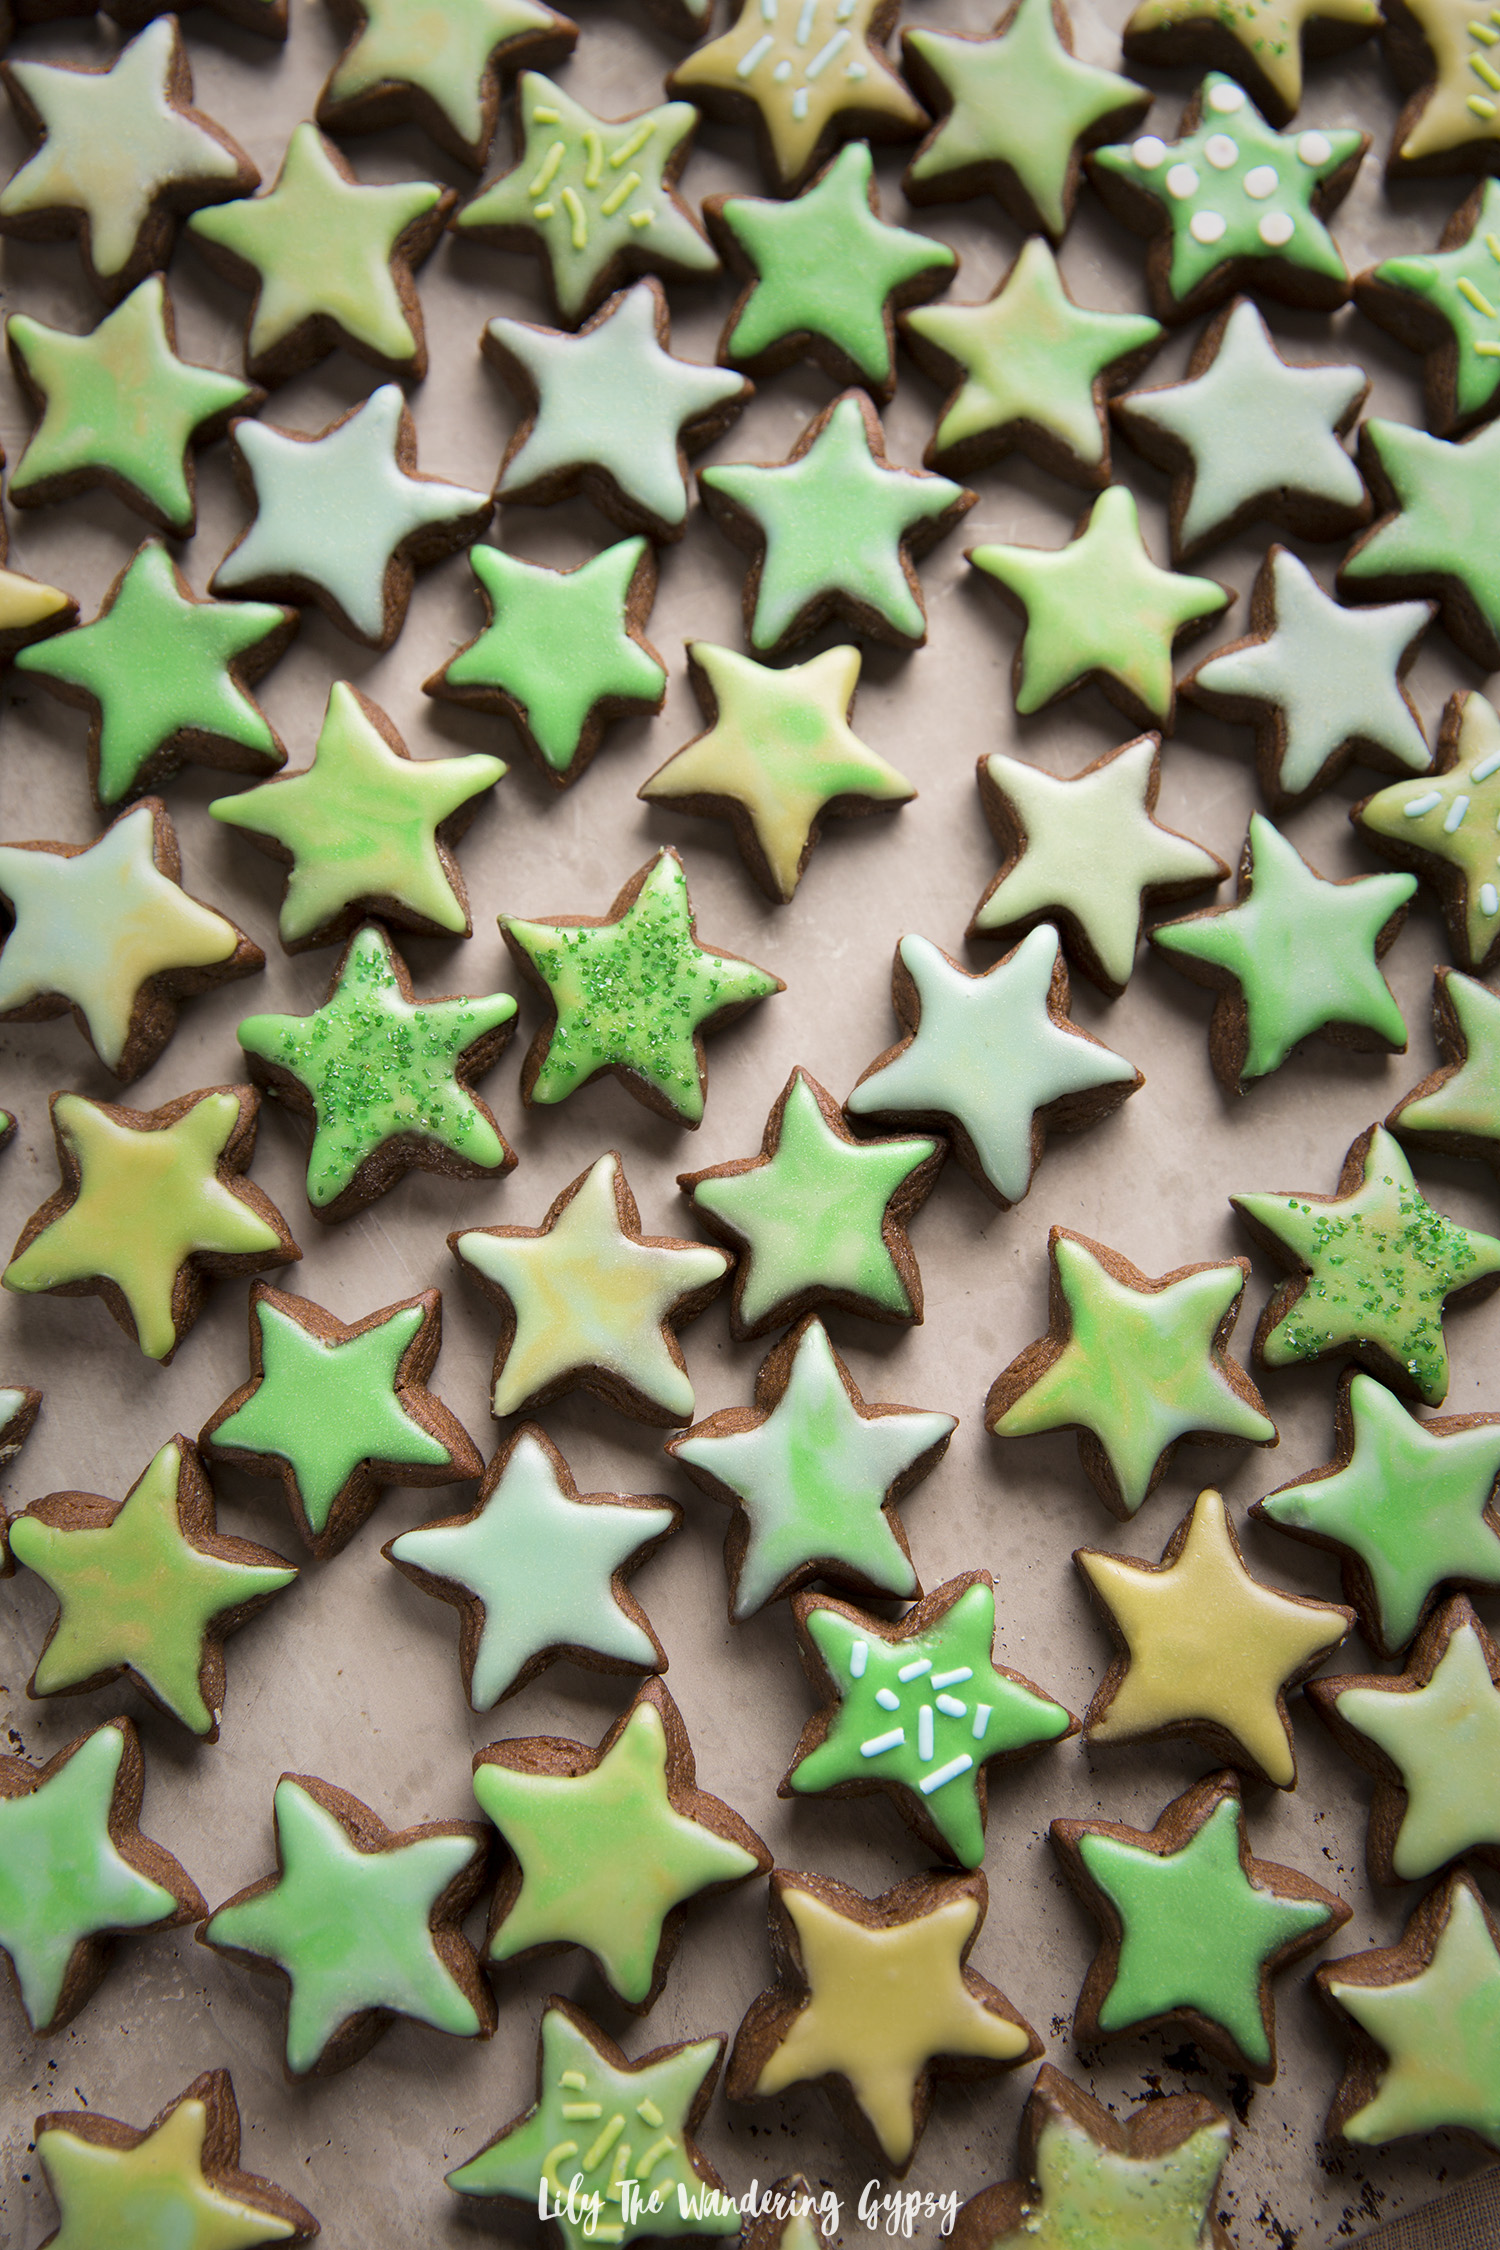 Soft Iced Gingerbread Cookies Recipe